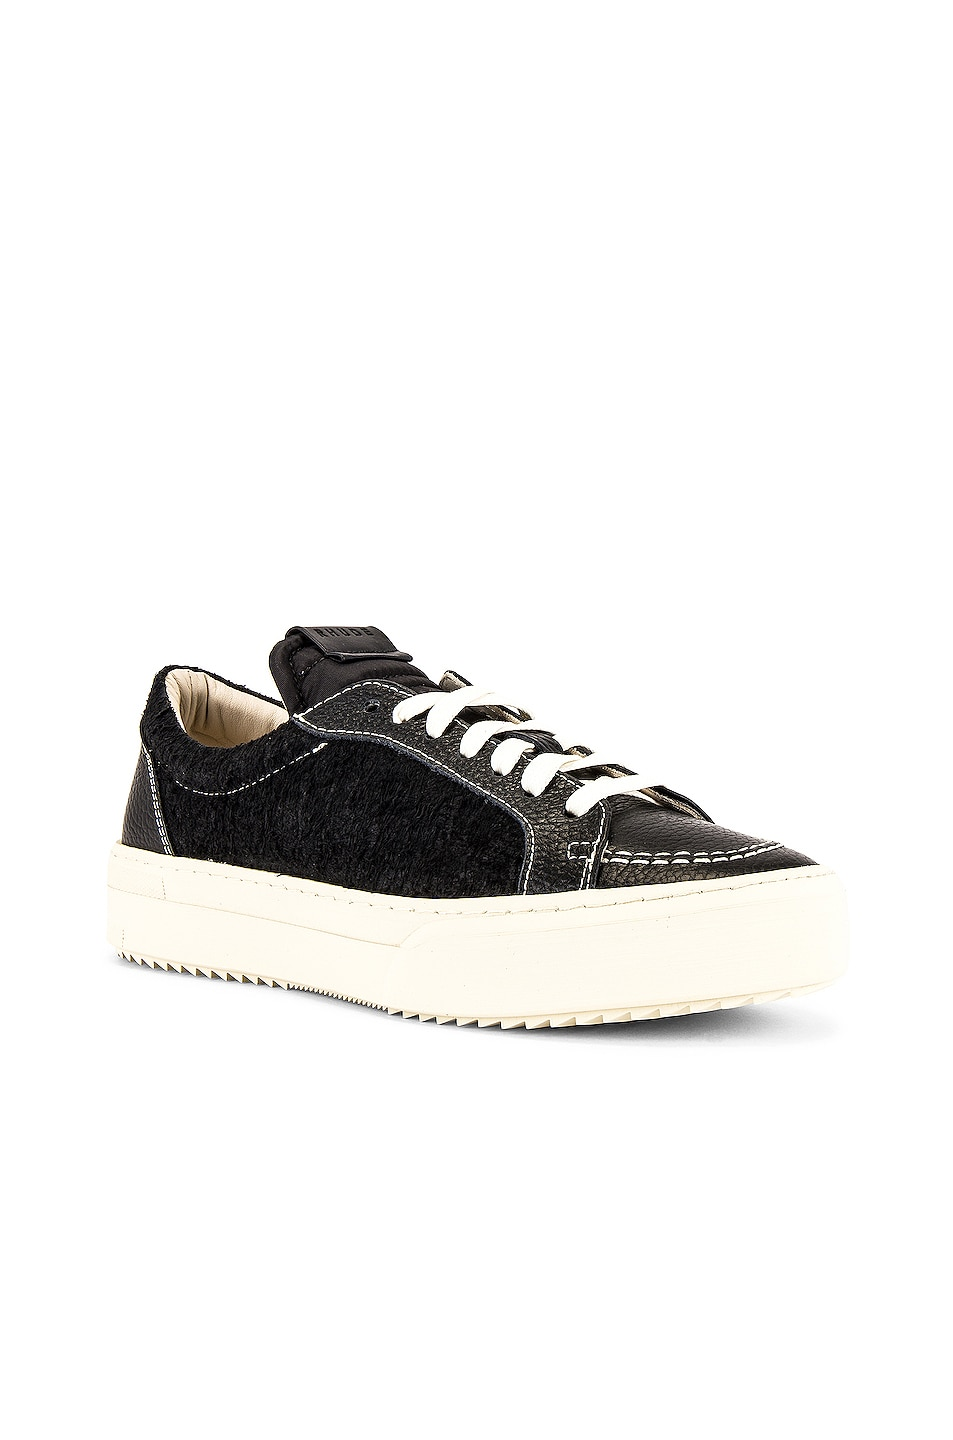 Image 1 of Rhude V1-Lo Sneaker in Black Leather & Black Suede & White